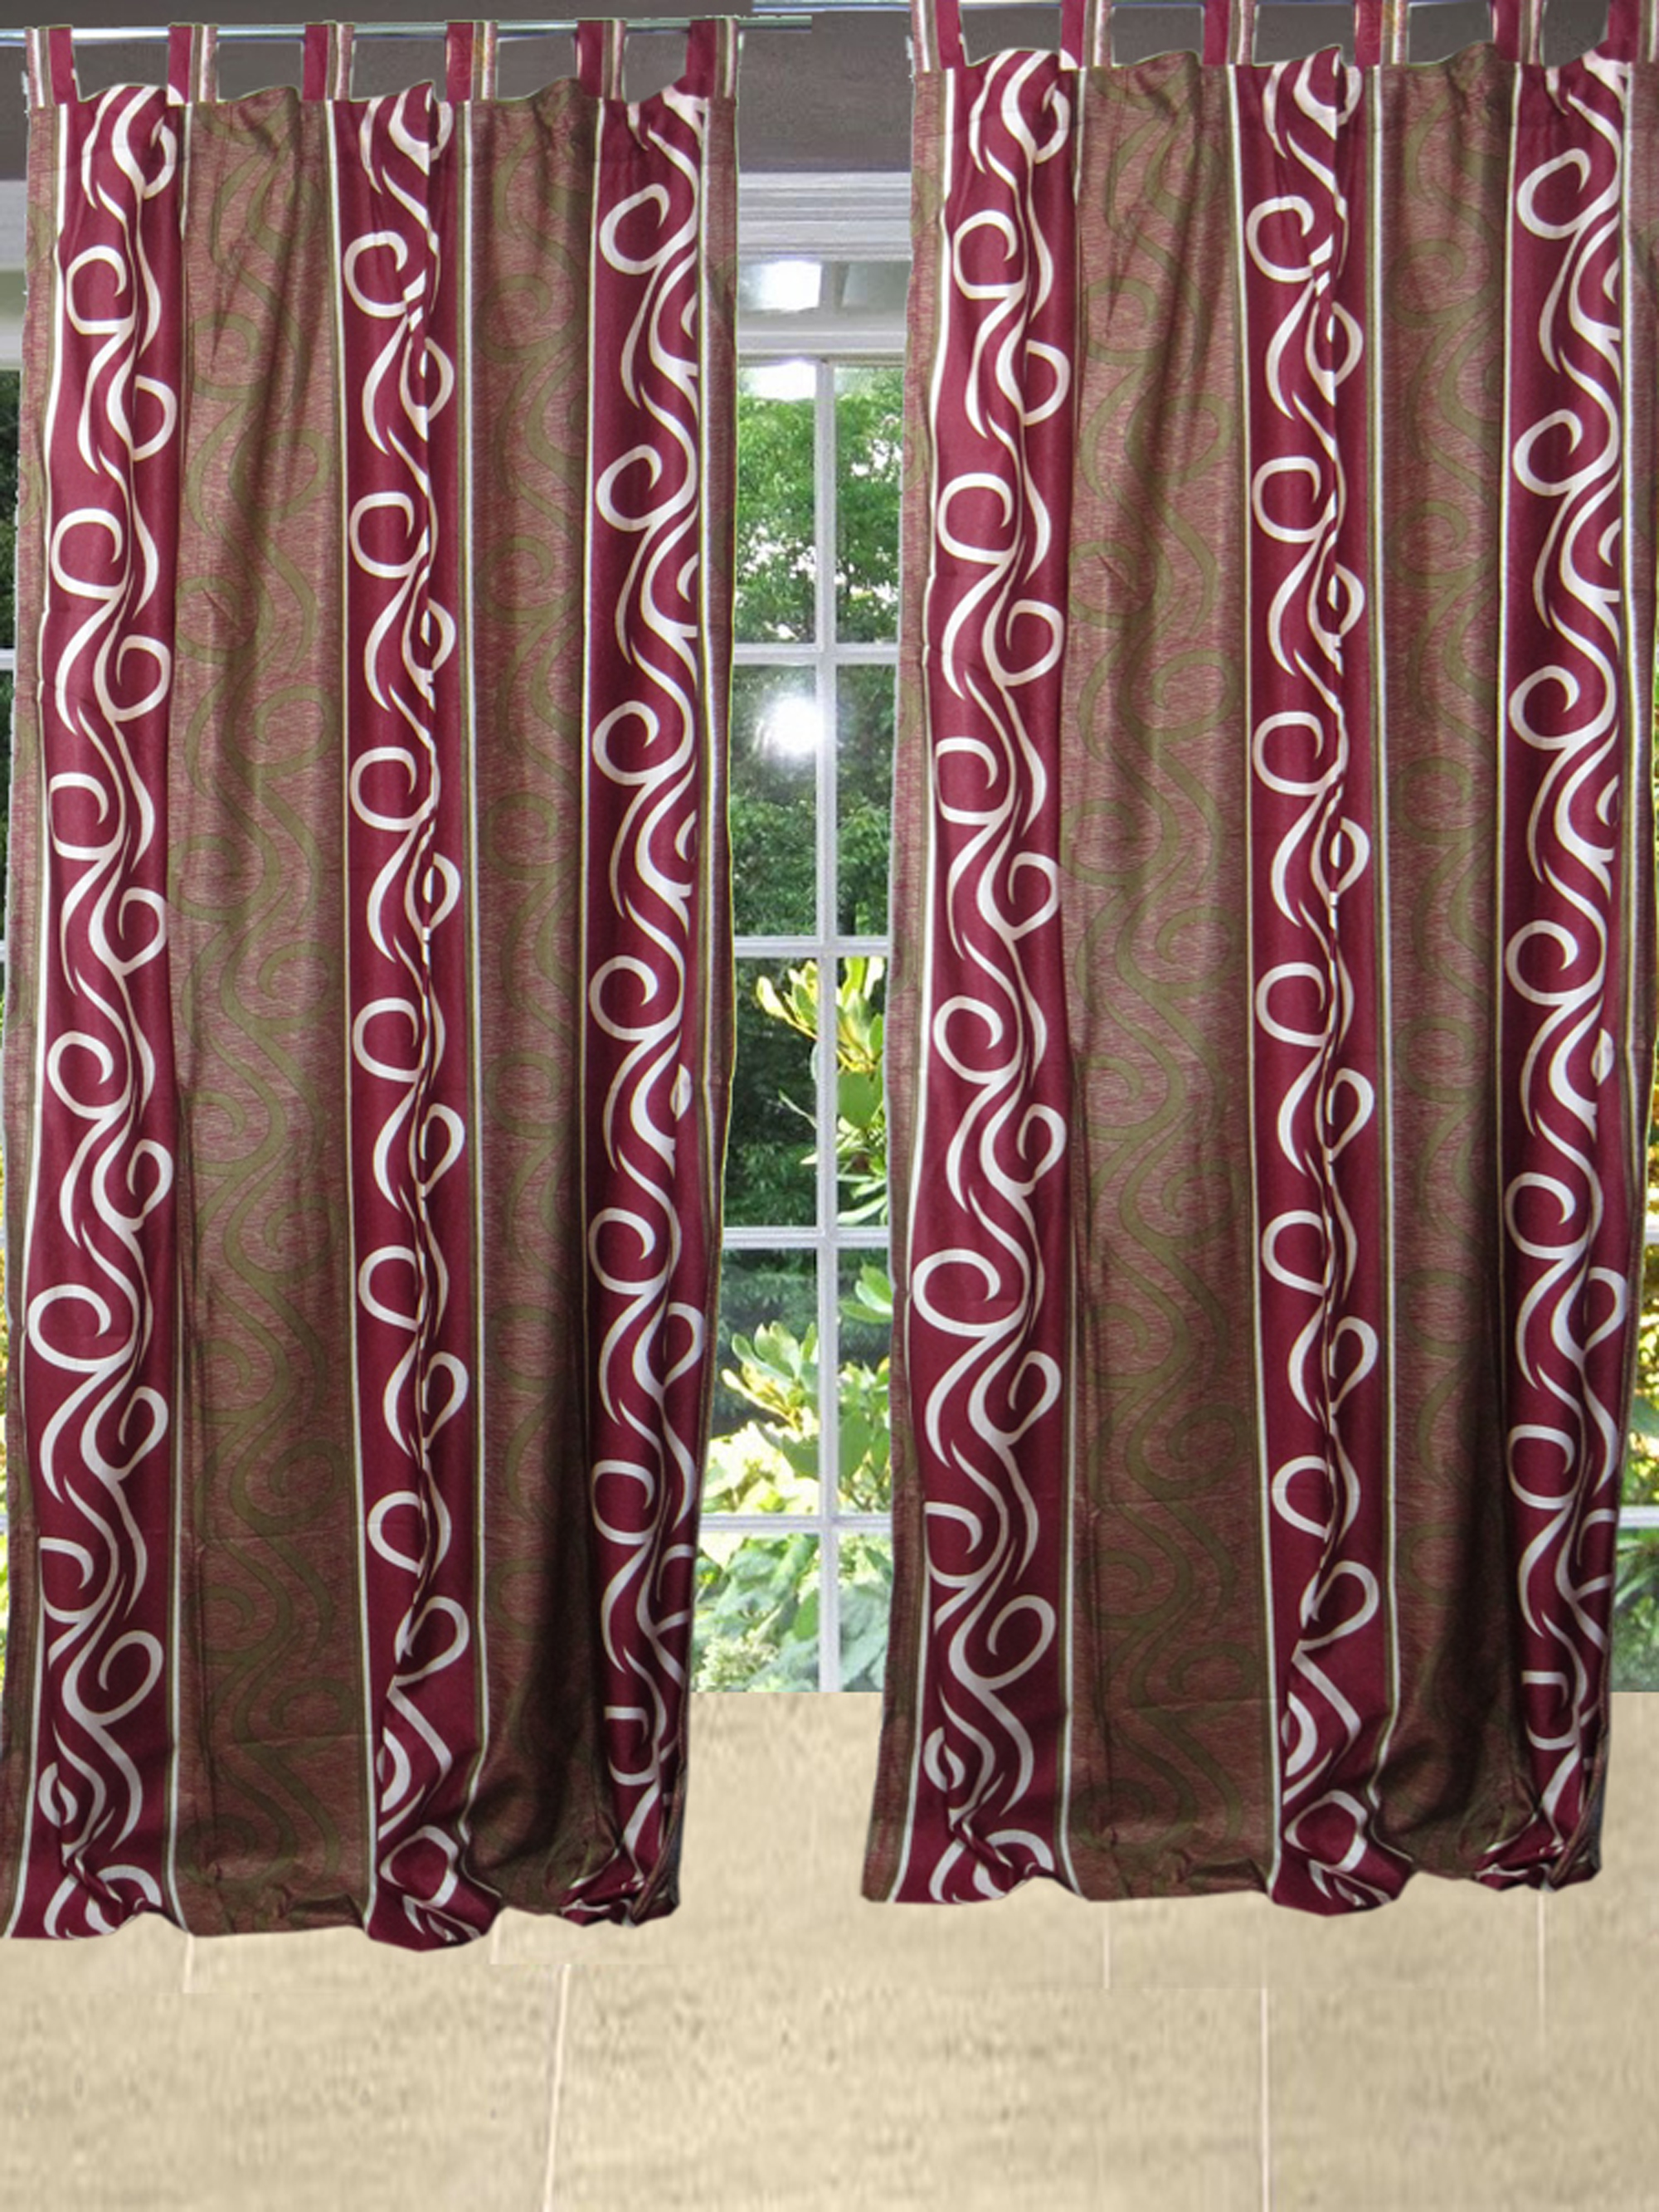 Mogul Two Window Curtains Pair Panels Southwestern Style Tab Top Window Treatments (84x48)